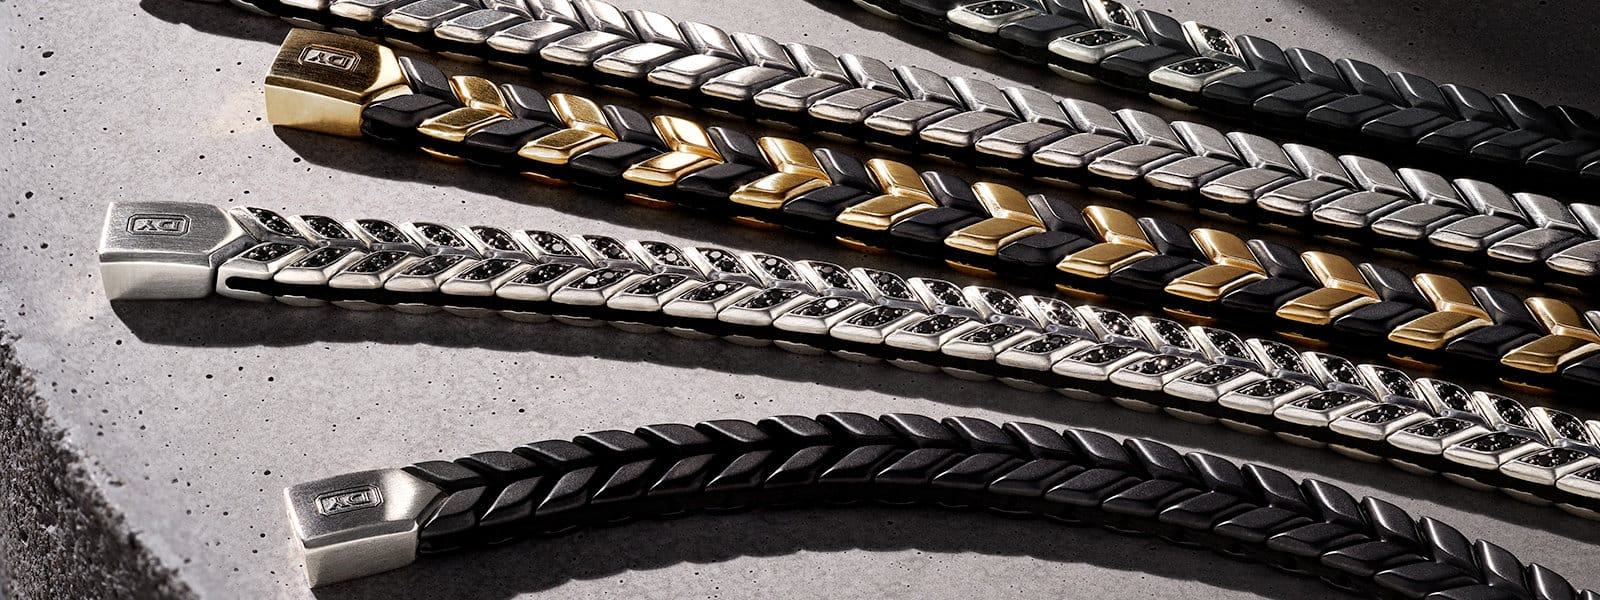 David Yurman Men's woven Chevron Bracelets in black titanium with sterling silver and black diamonds, sterling silver, 18K gold and black titanium, sterling silver with black diamonds, and black titanium, lying in a stack in a ray of light on a concrete slab.